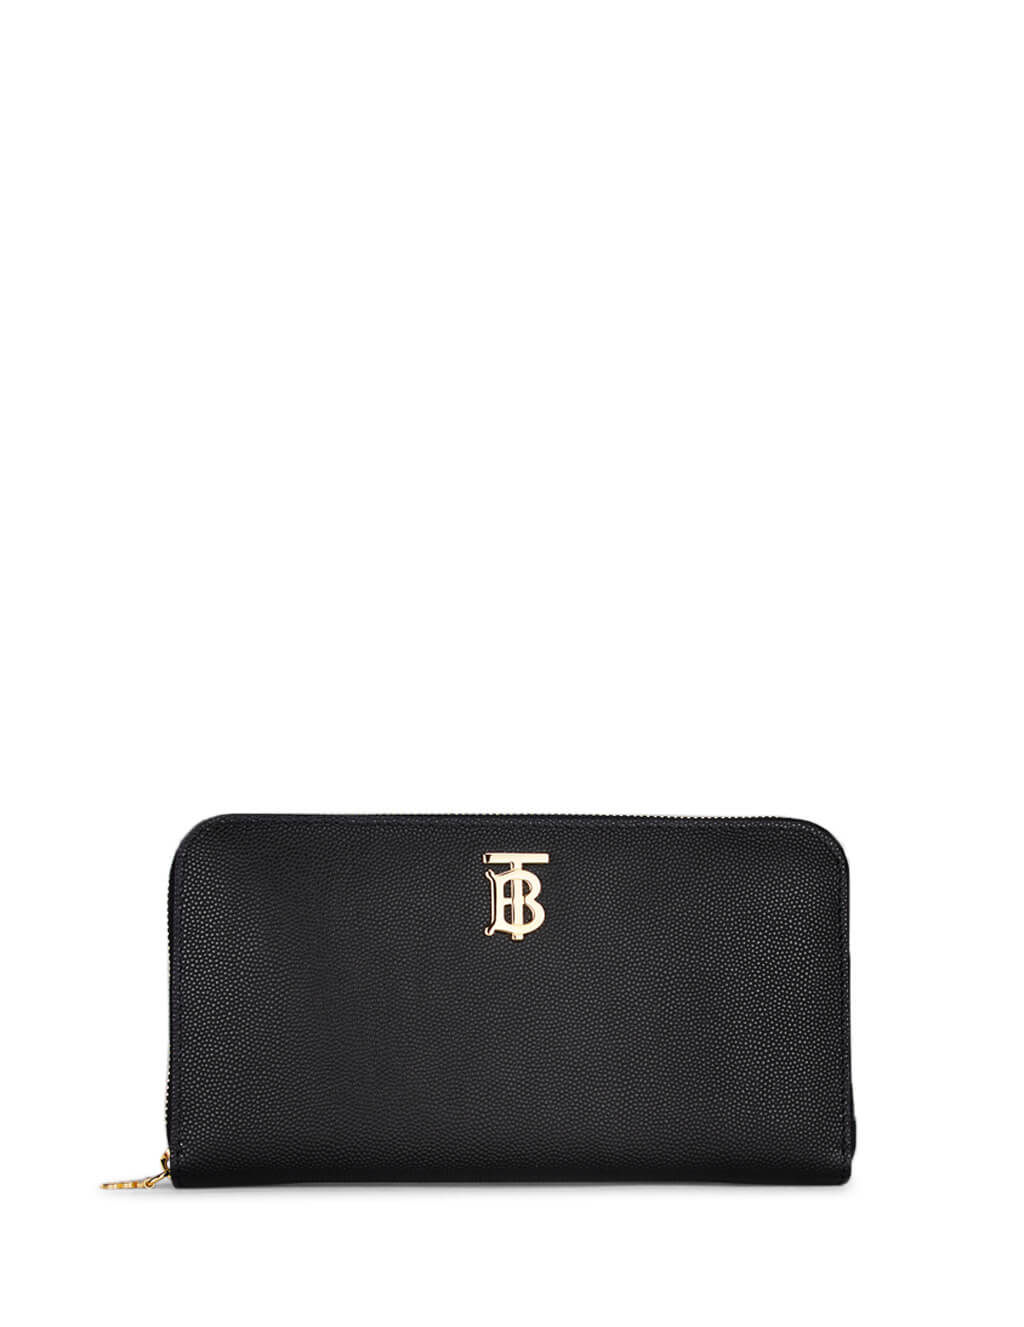 Burberry Women's Black Leather Monogram Ziparound Wallet 8023297a1189